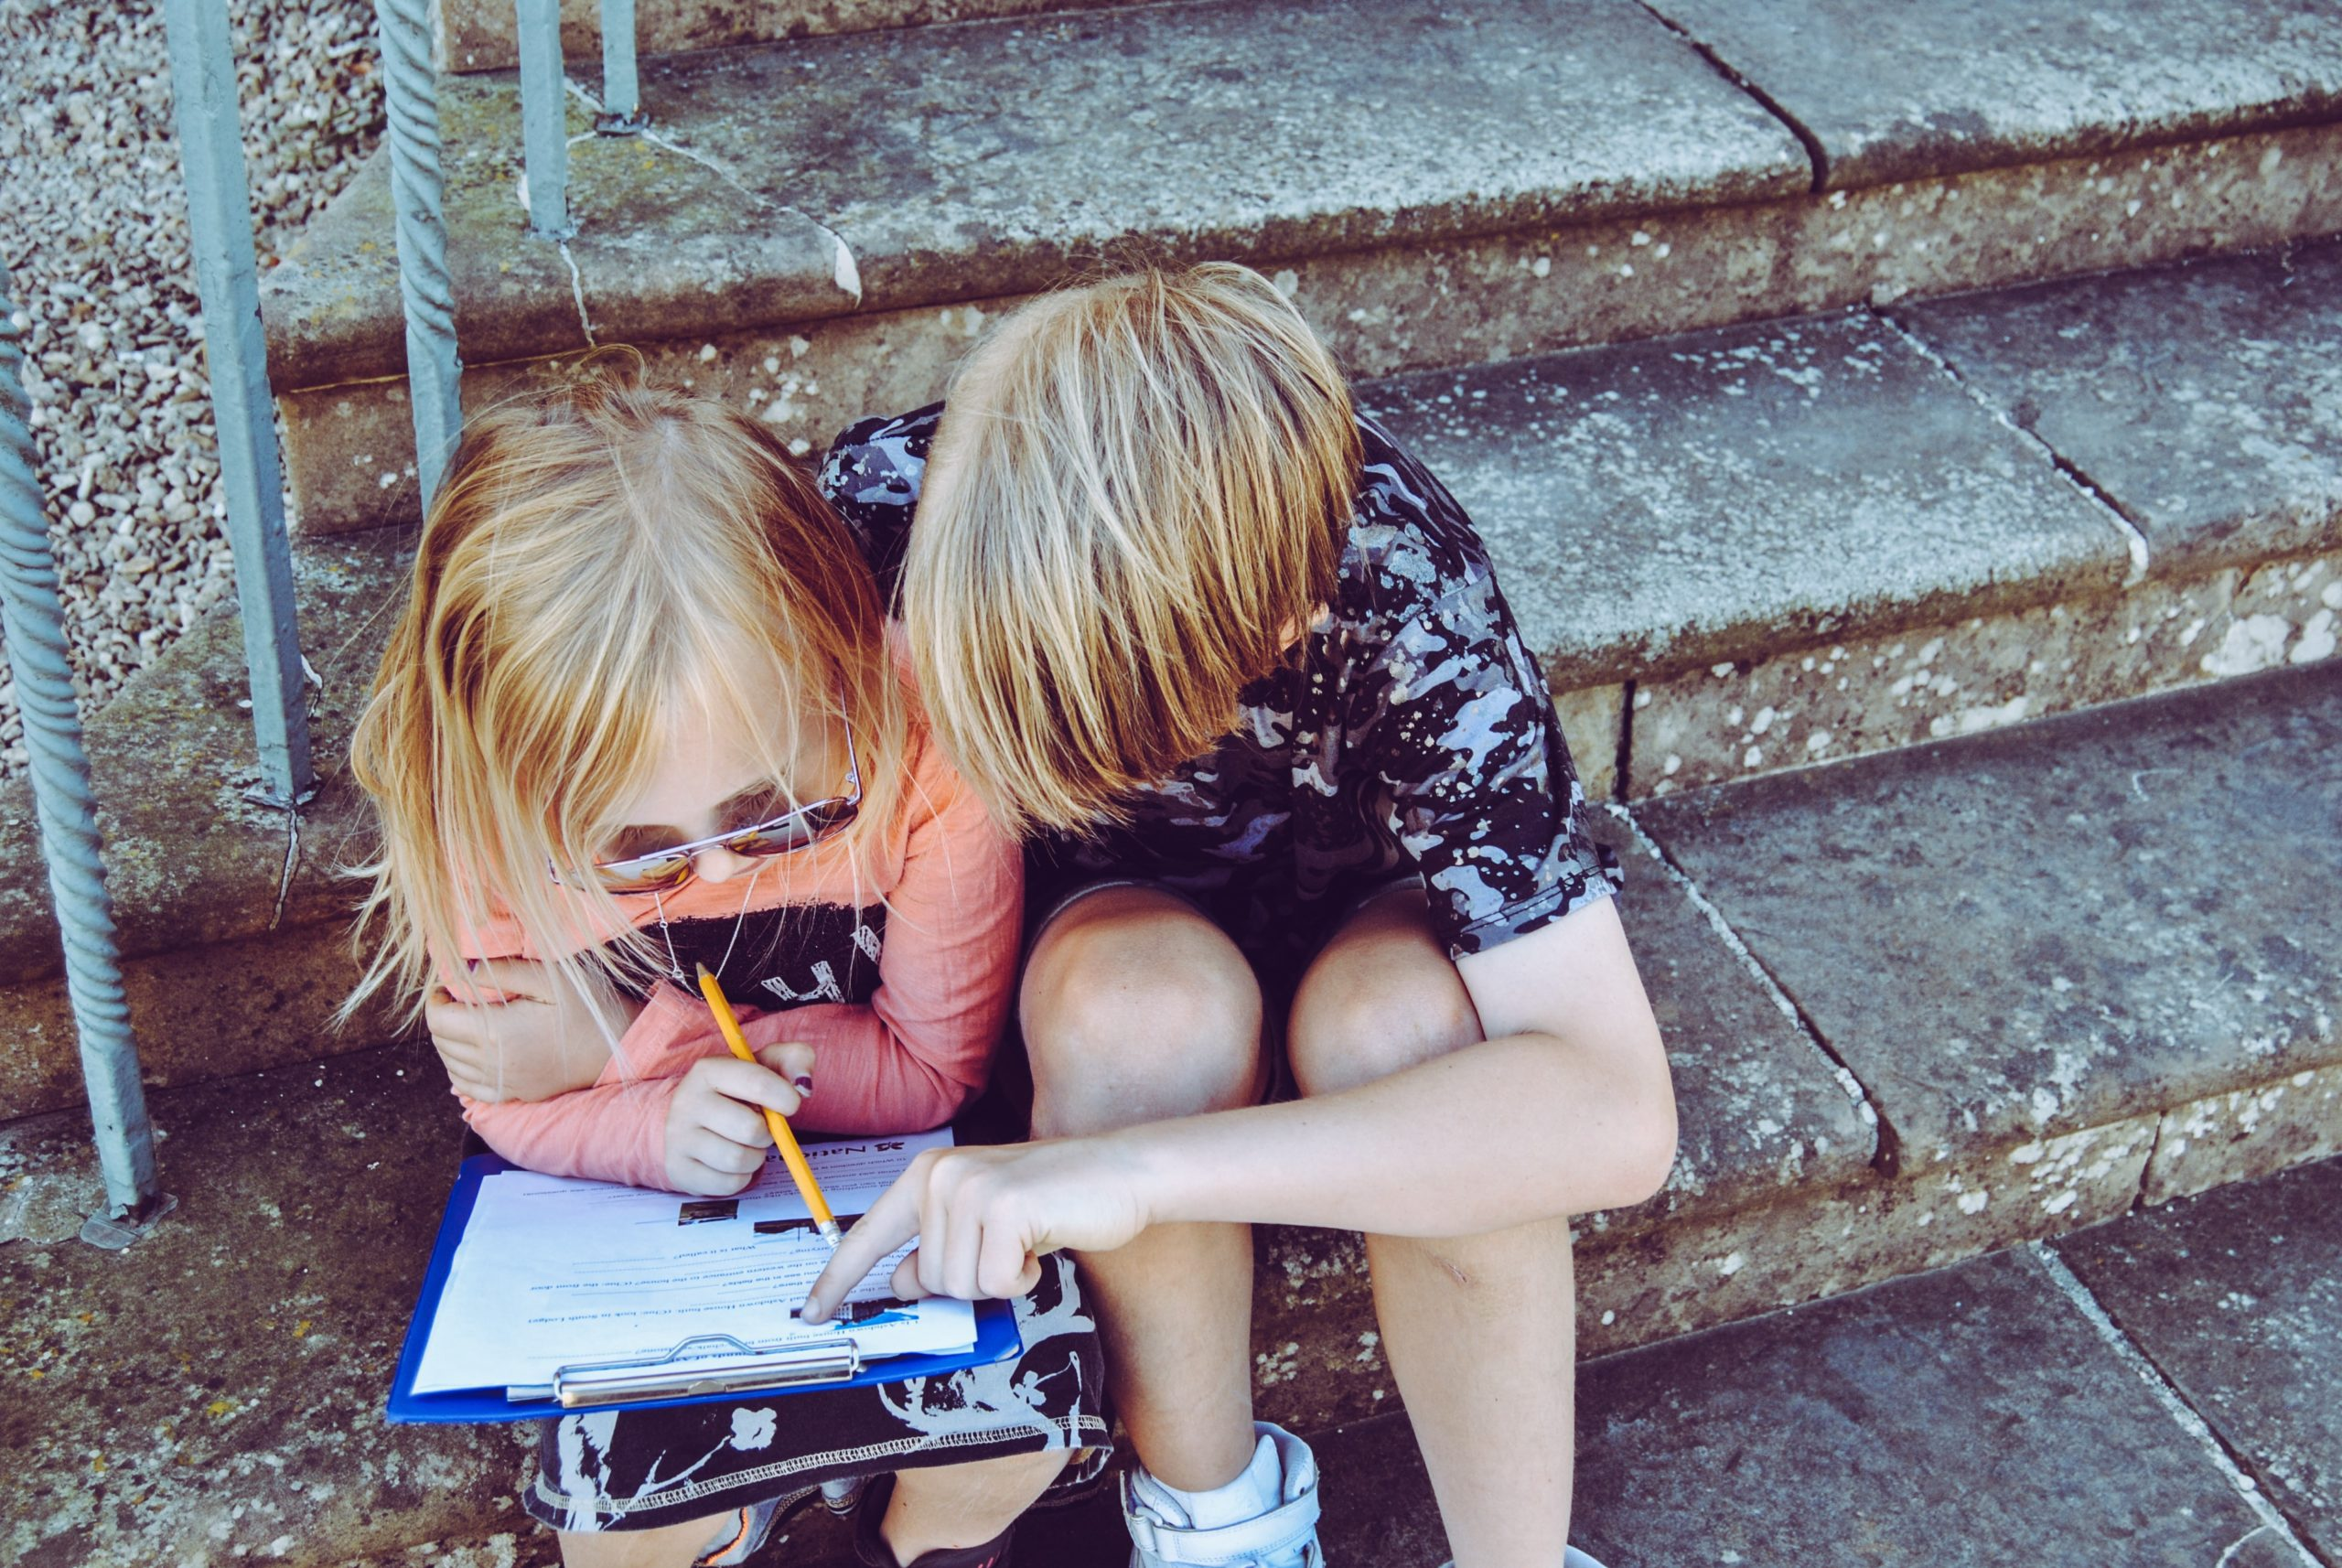 Teens vs. Toddlers – Why Not Both?